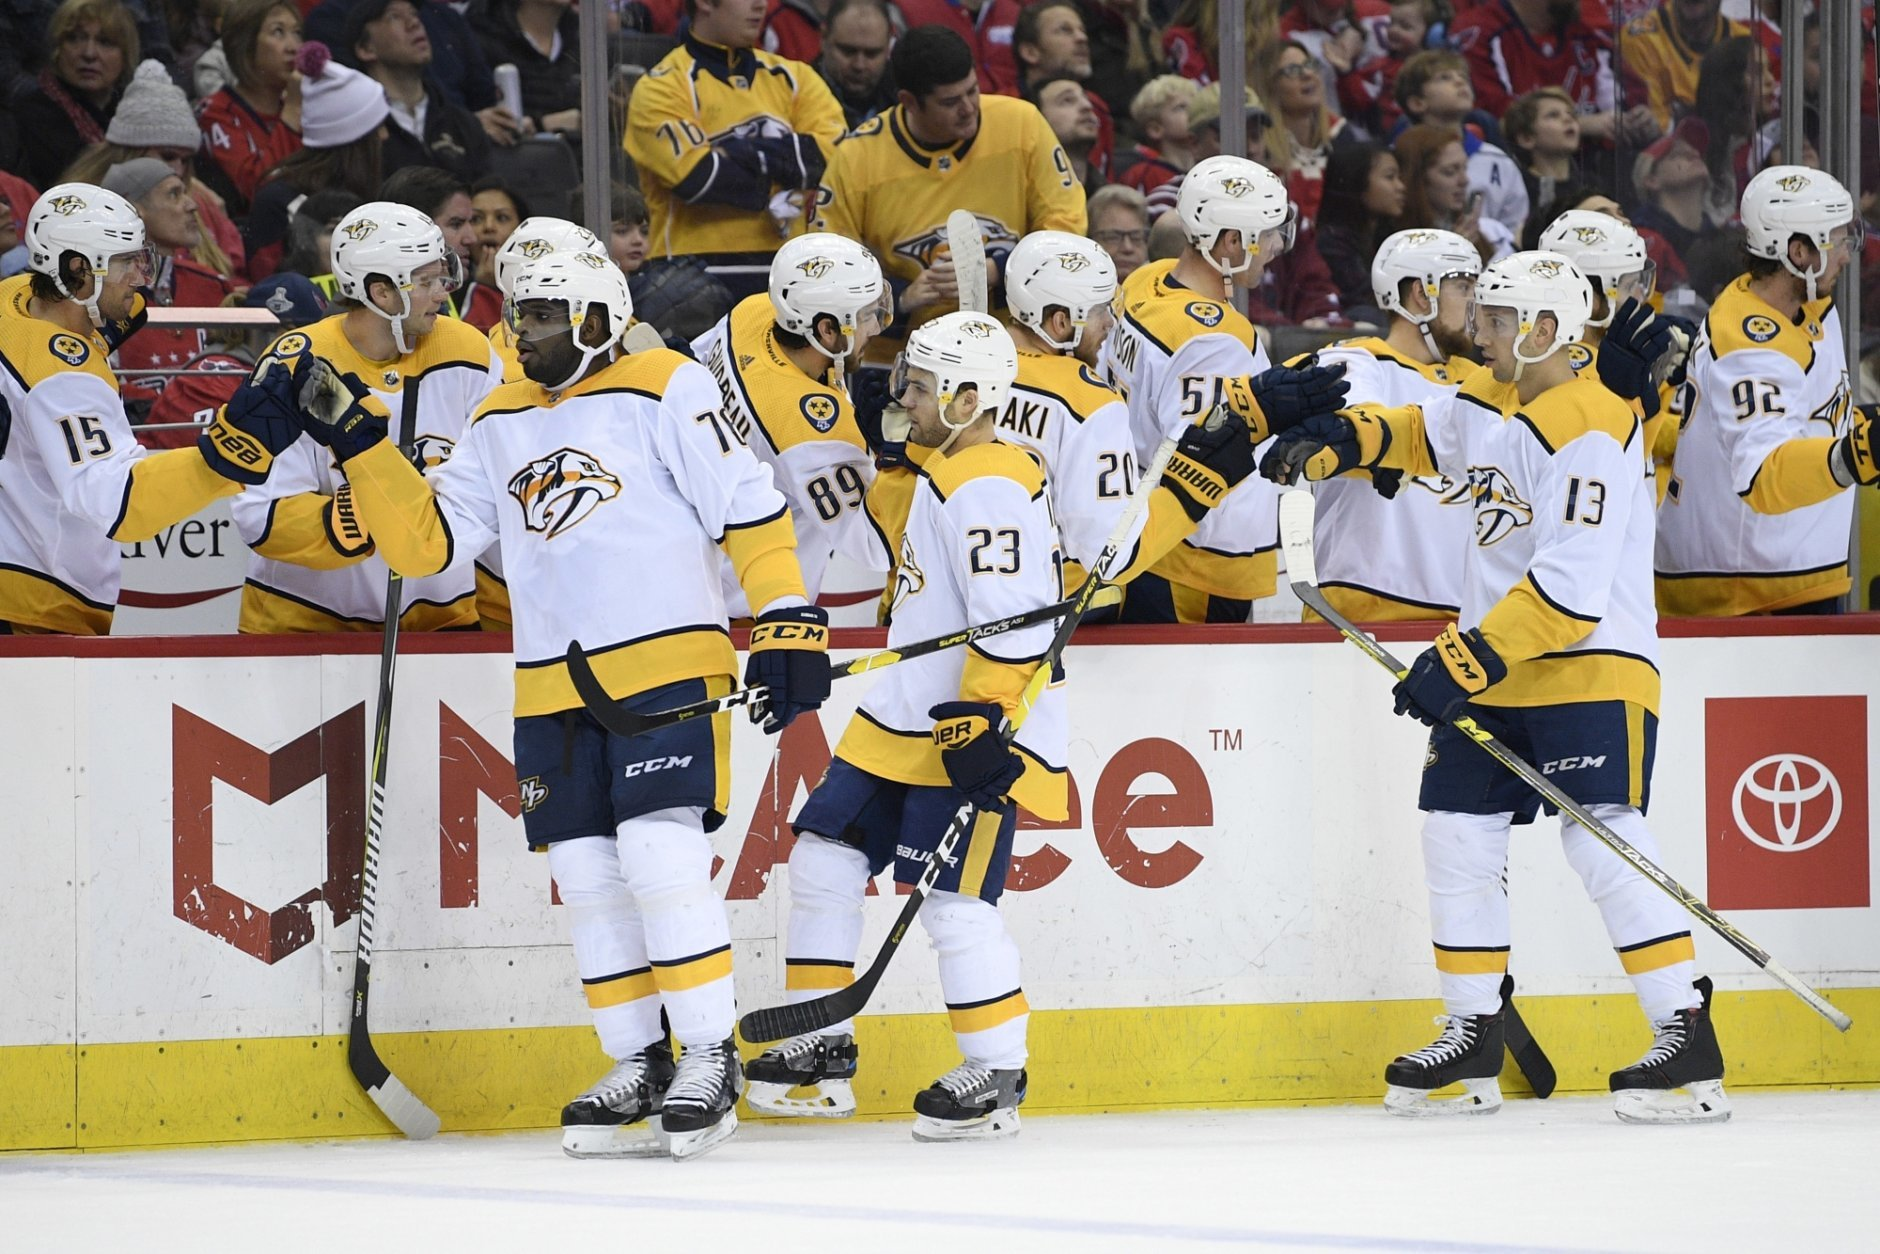 Nashville Predators center Rocco Grimaldi (23) celebrates his goal with the bench and defenseman P.K. Subban (76) and center Nick Bonino (13) during the first period of an NHL hockey game against the Washington Capitals, Monday, Dec. 31, 2018, in Washington. (AP Photo/Nick Wass)